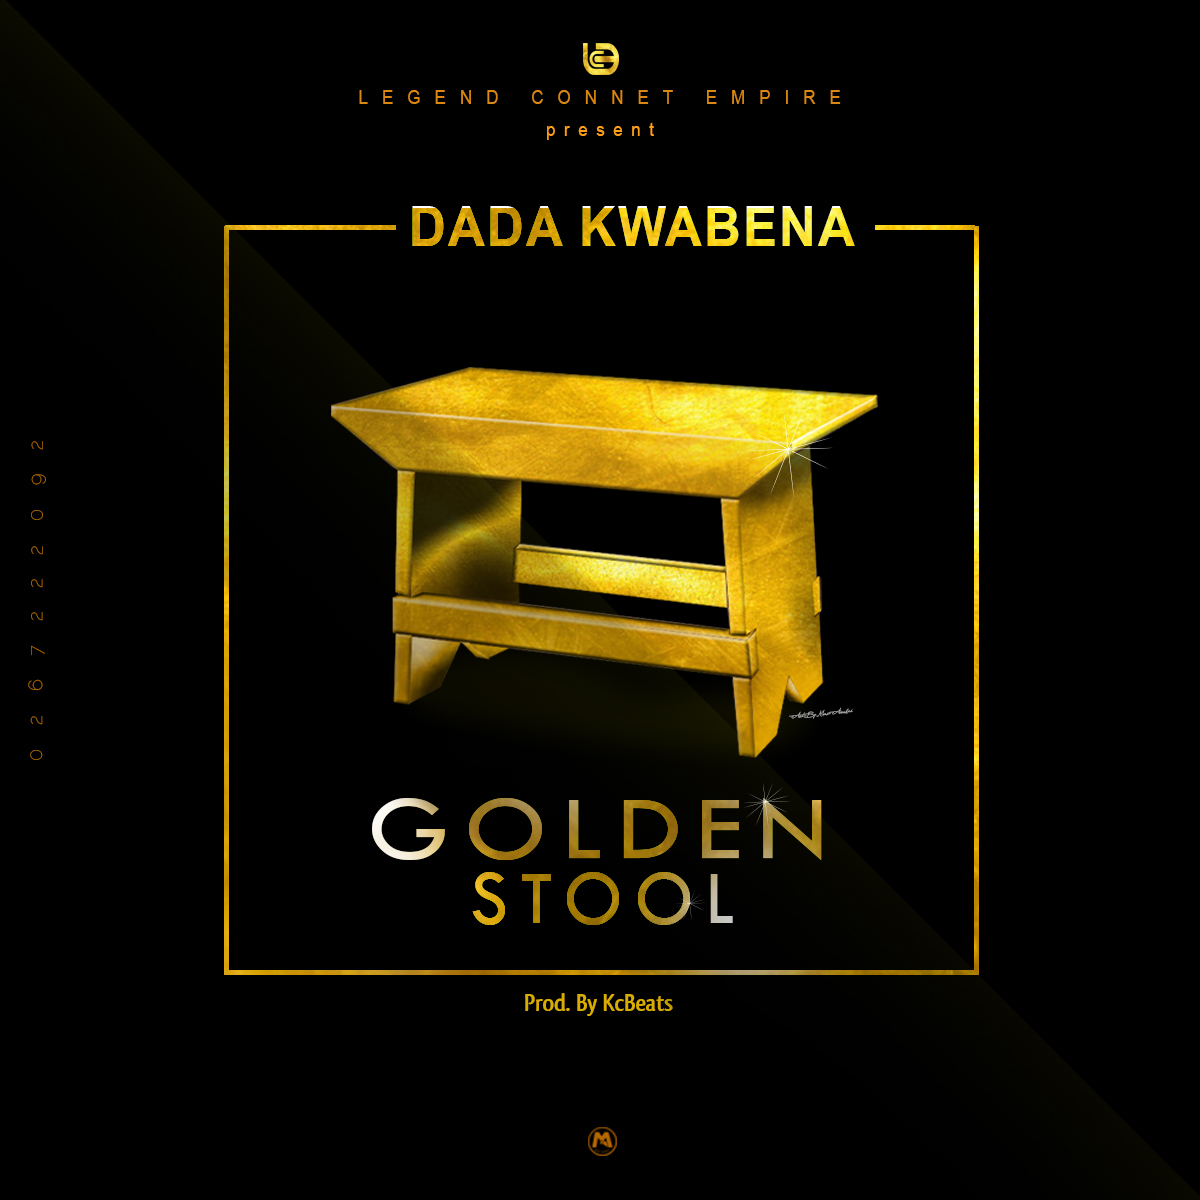 Dada Kwabena Golden Stool Art By MuseAwakesGfx